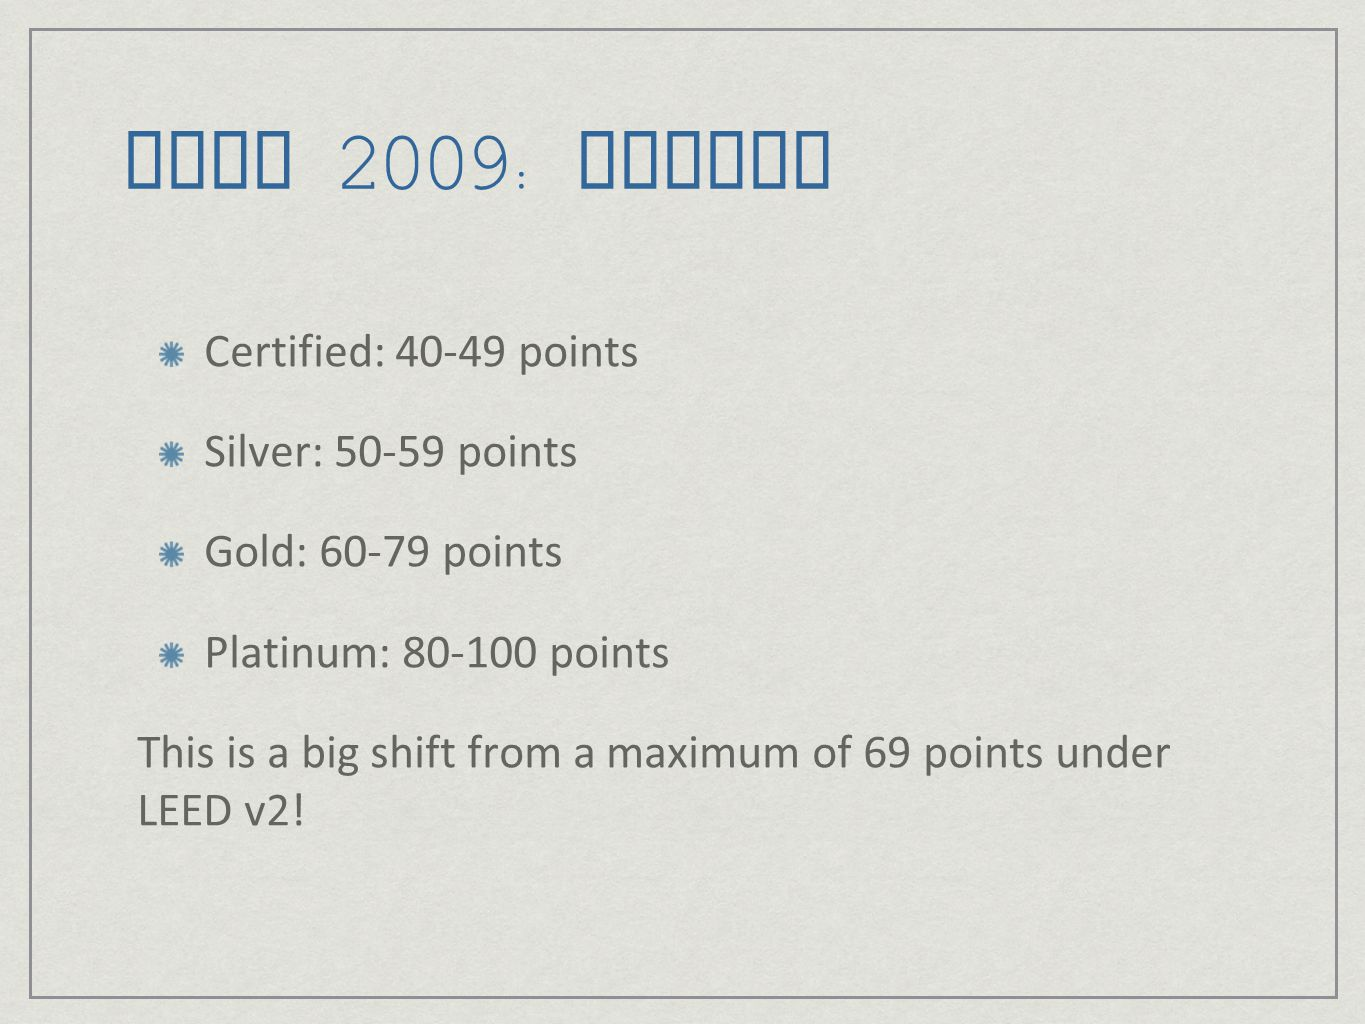 LEED 2009: Points Certified: 40-49 points Silver: 50-59 points